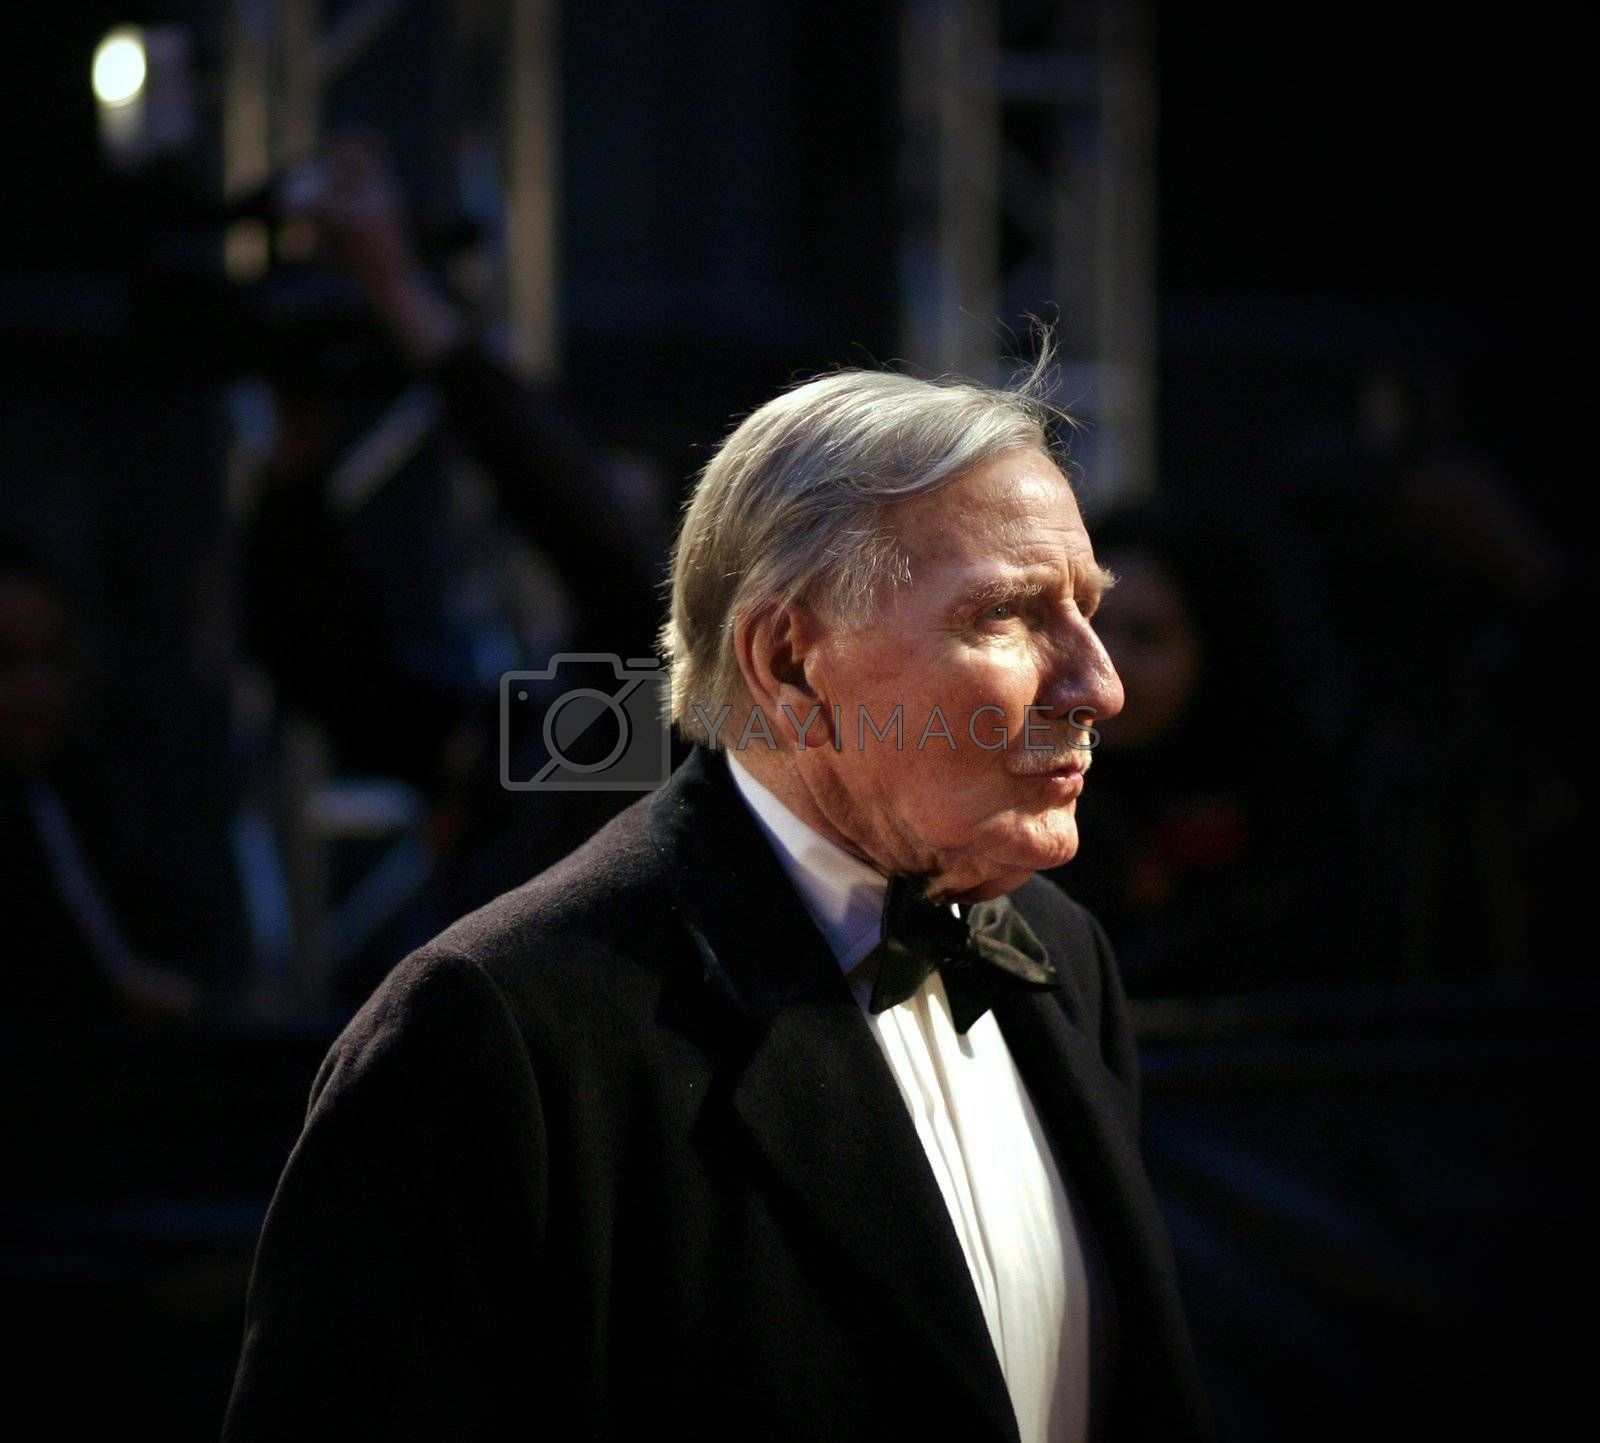 Actor Leslie Phillips arrives at The Orange British Academy Film Awards at the Royal Opera House on February 11, 2007 in London, England.